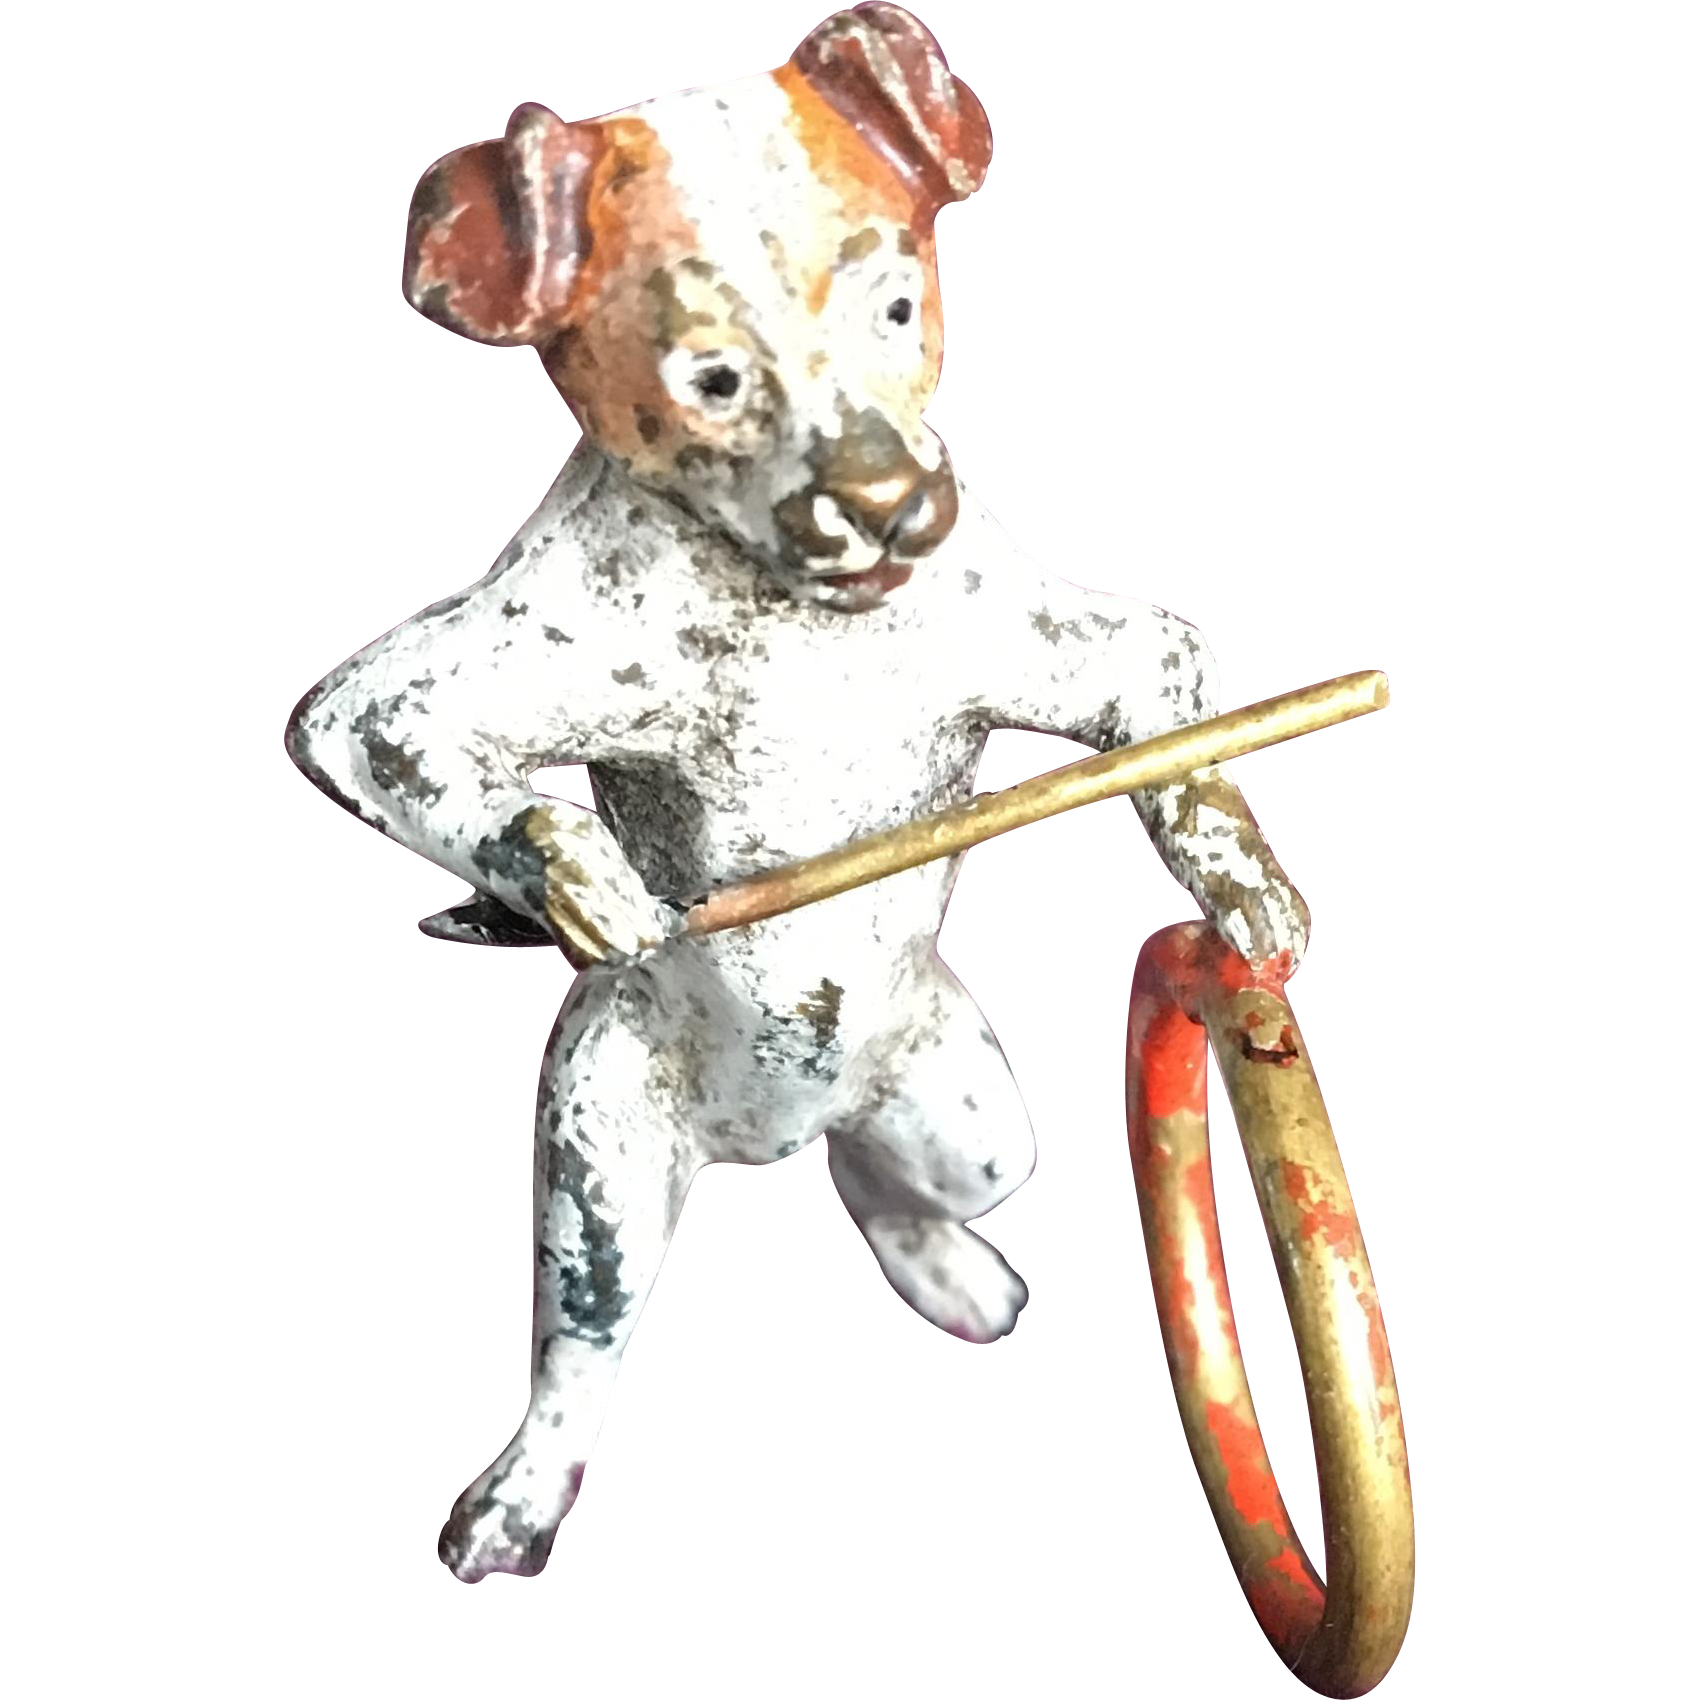 Miniature Vienna Bronze Puppy Dog Playing Stick & Ring Game